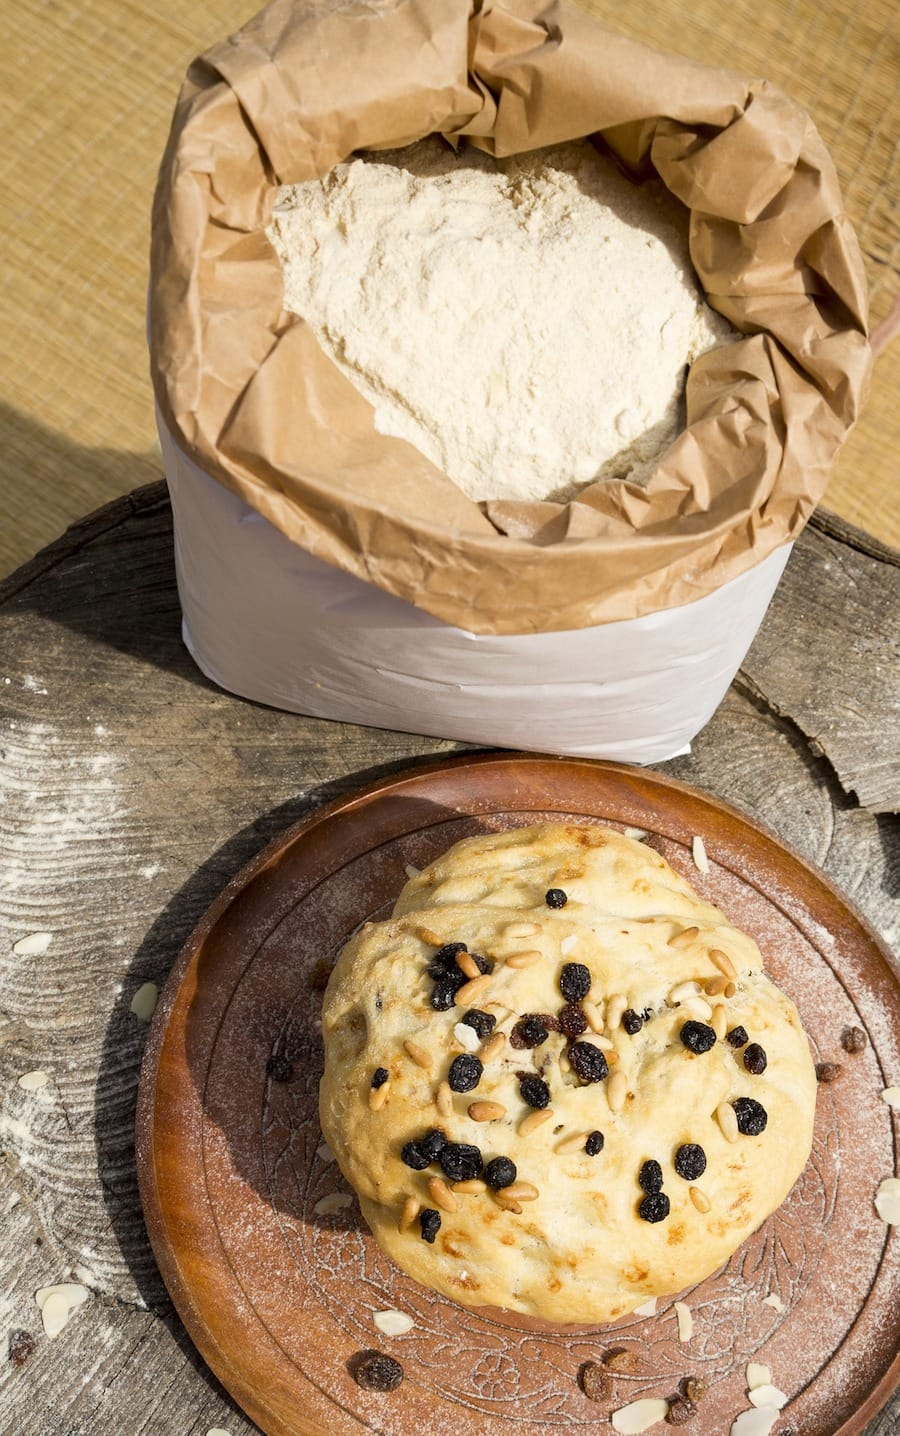 Learn to make panettone during a cooking class in Milan